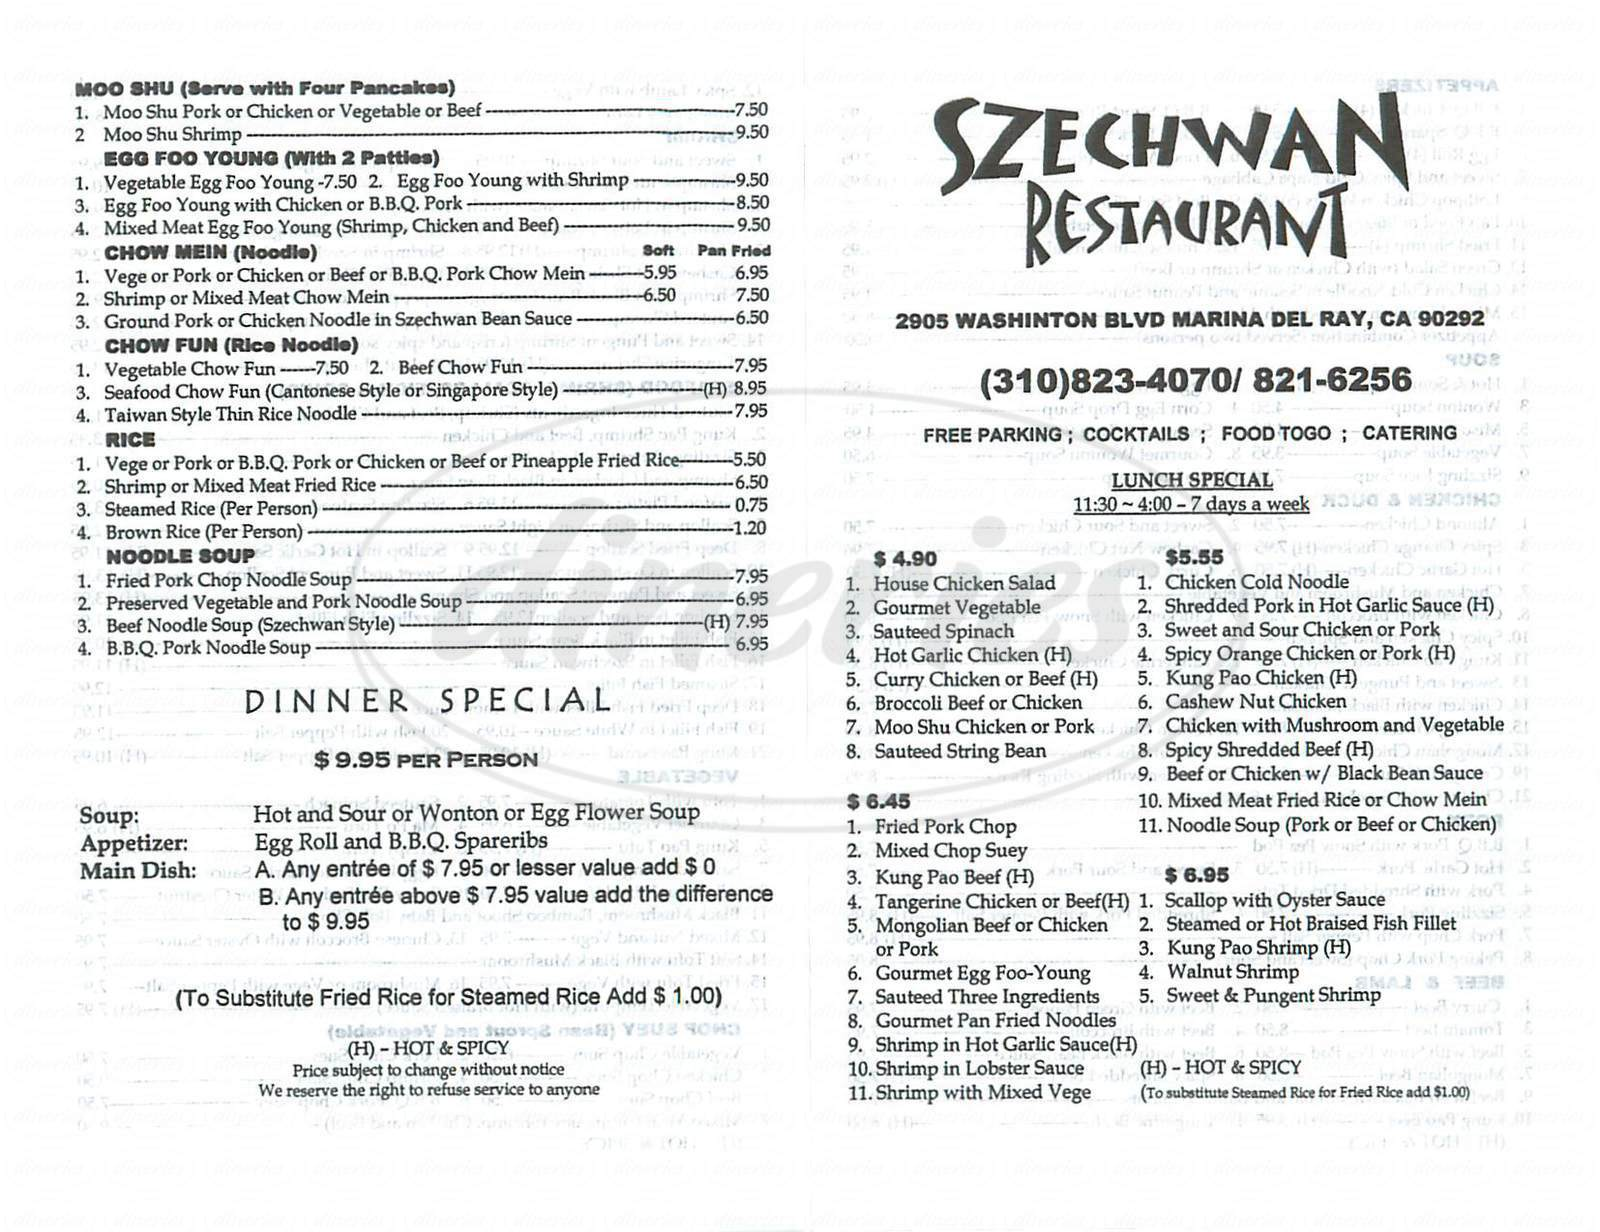 menu for Szechwan Restaurant